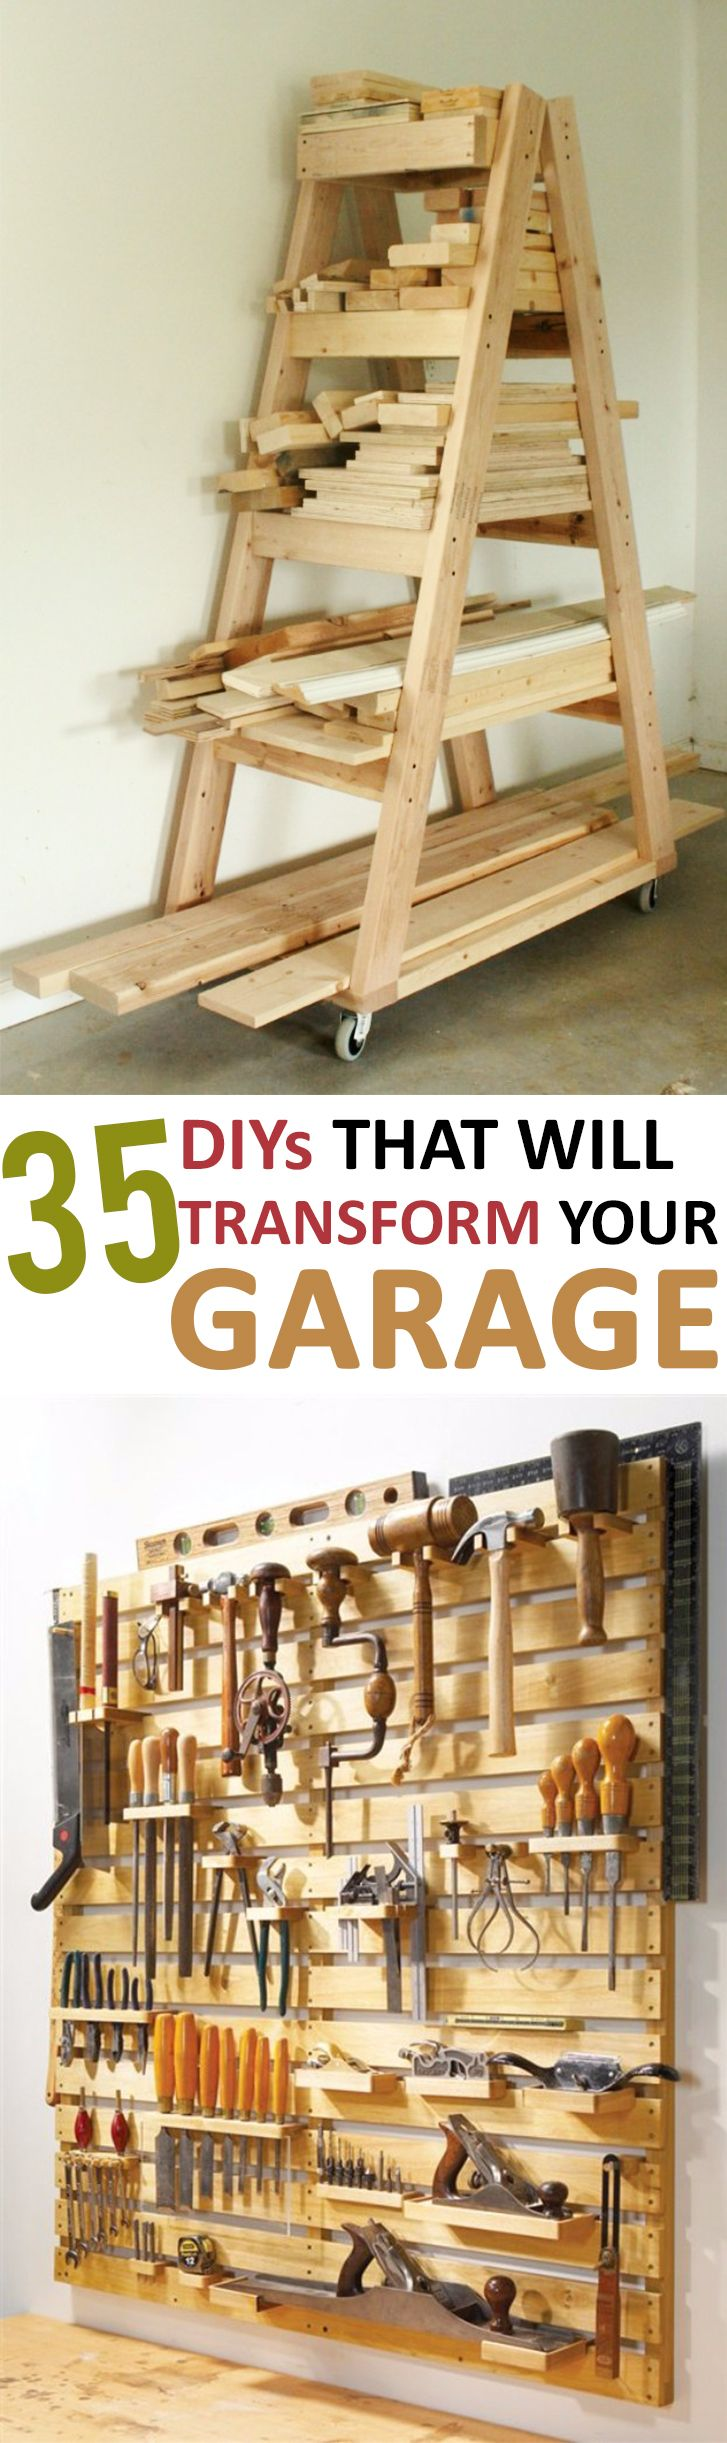 everything organization and brilliant hang projects pin tips ideas garage diy